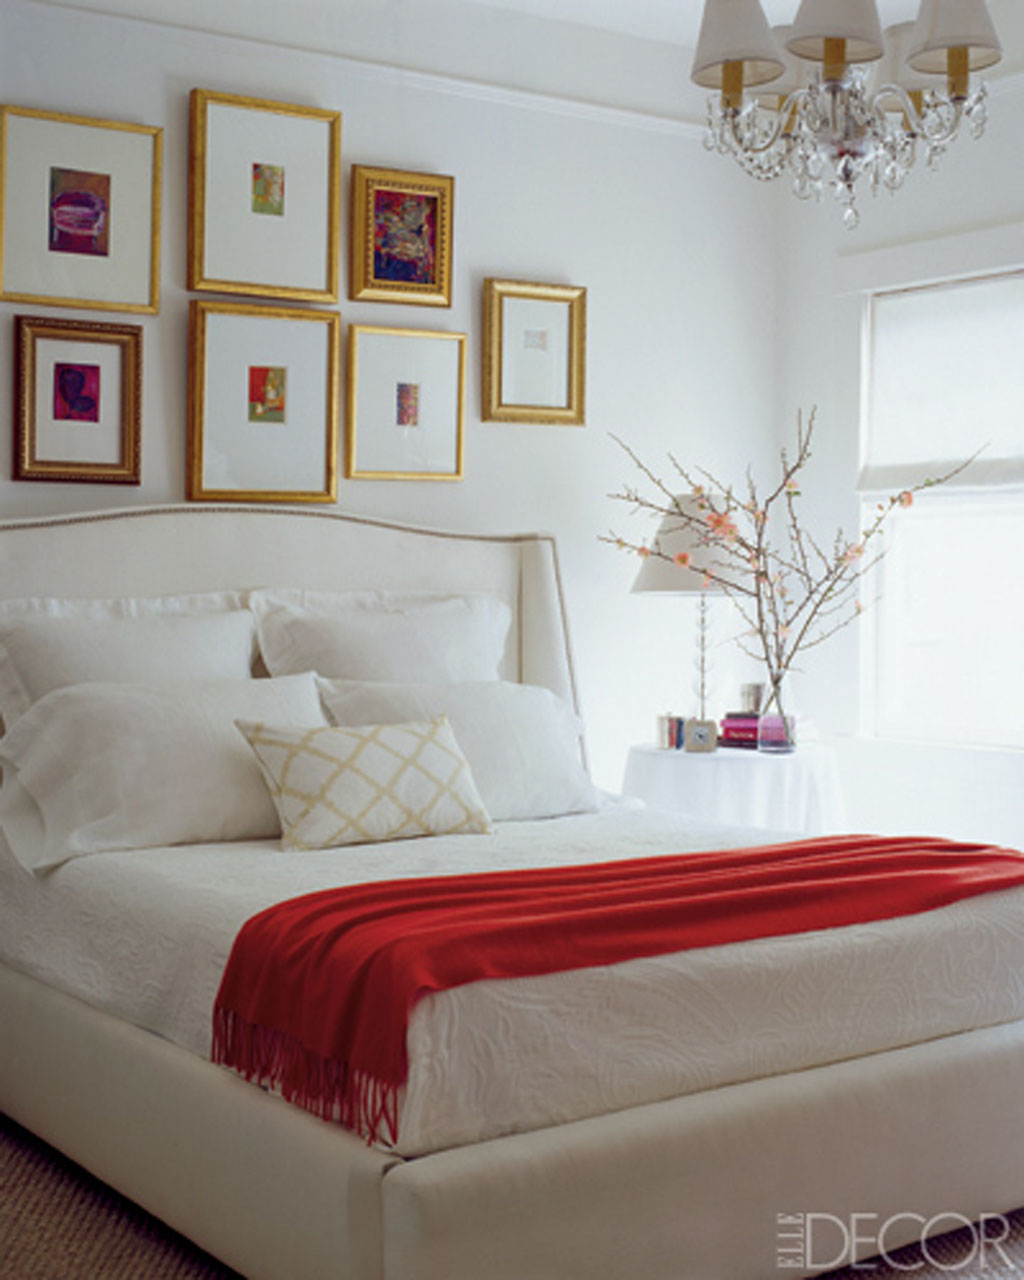 Interior White And Red Bedroom Ideas black white and red bedroom ideas home bathroom instagrams ideas